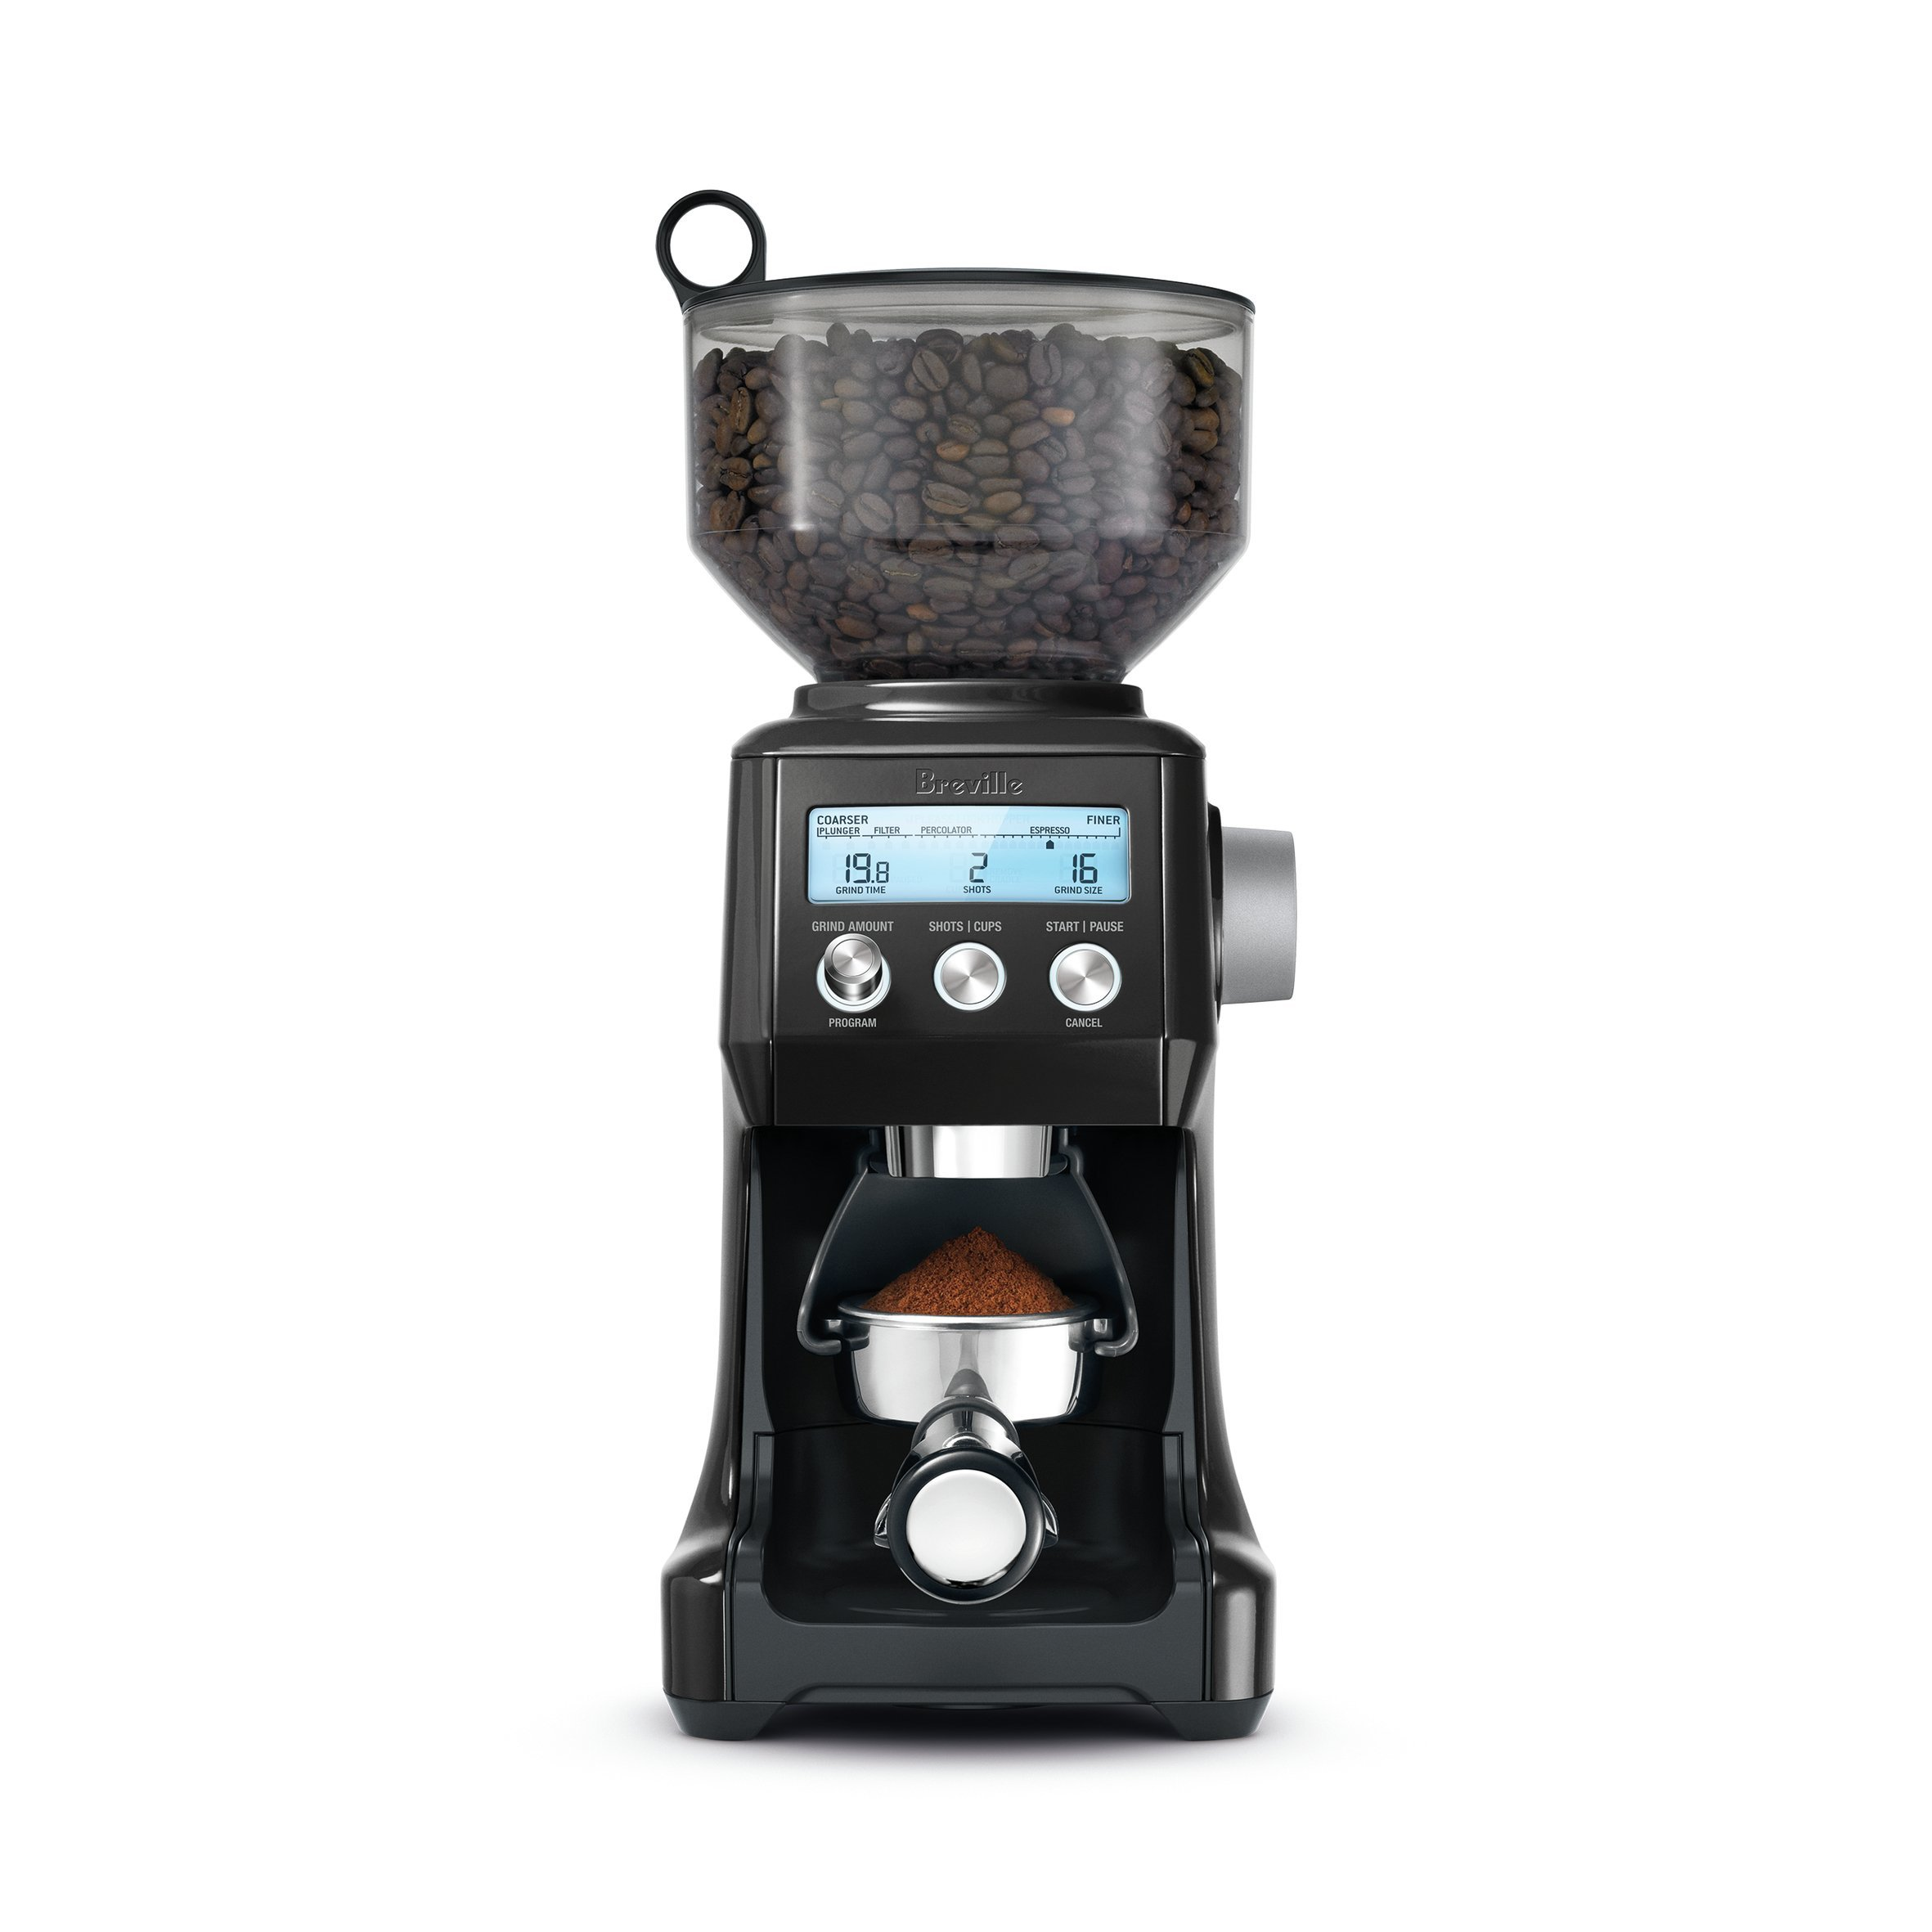 Breville BCG820BKSXL The Smart Grinder Pro Coffee Bean Grinder, Sesame Black (Renewed) by Breville